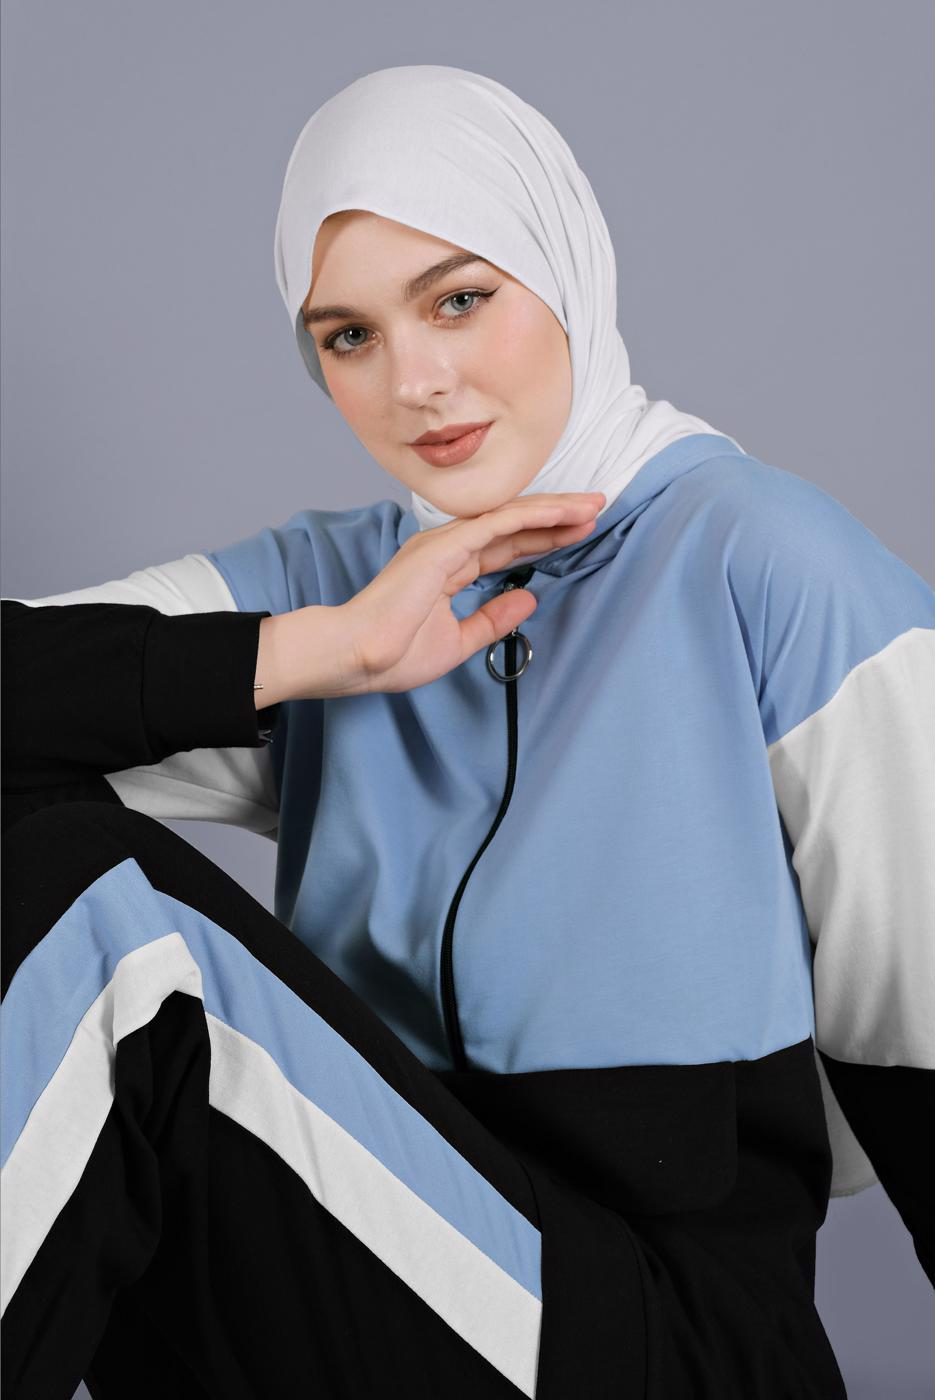 Female BLUE SUIT WITH SPORTS PANTS  7766